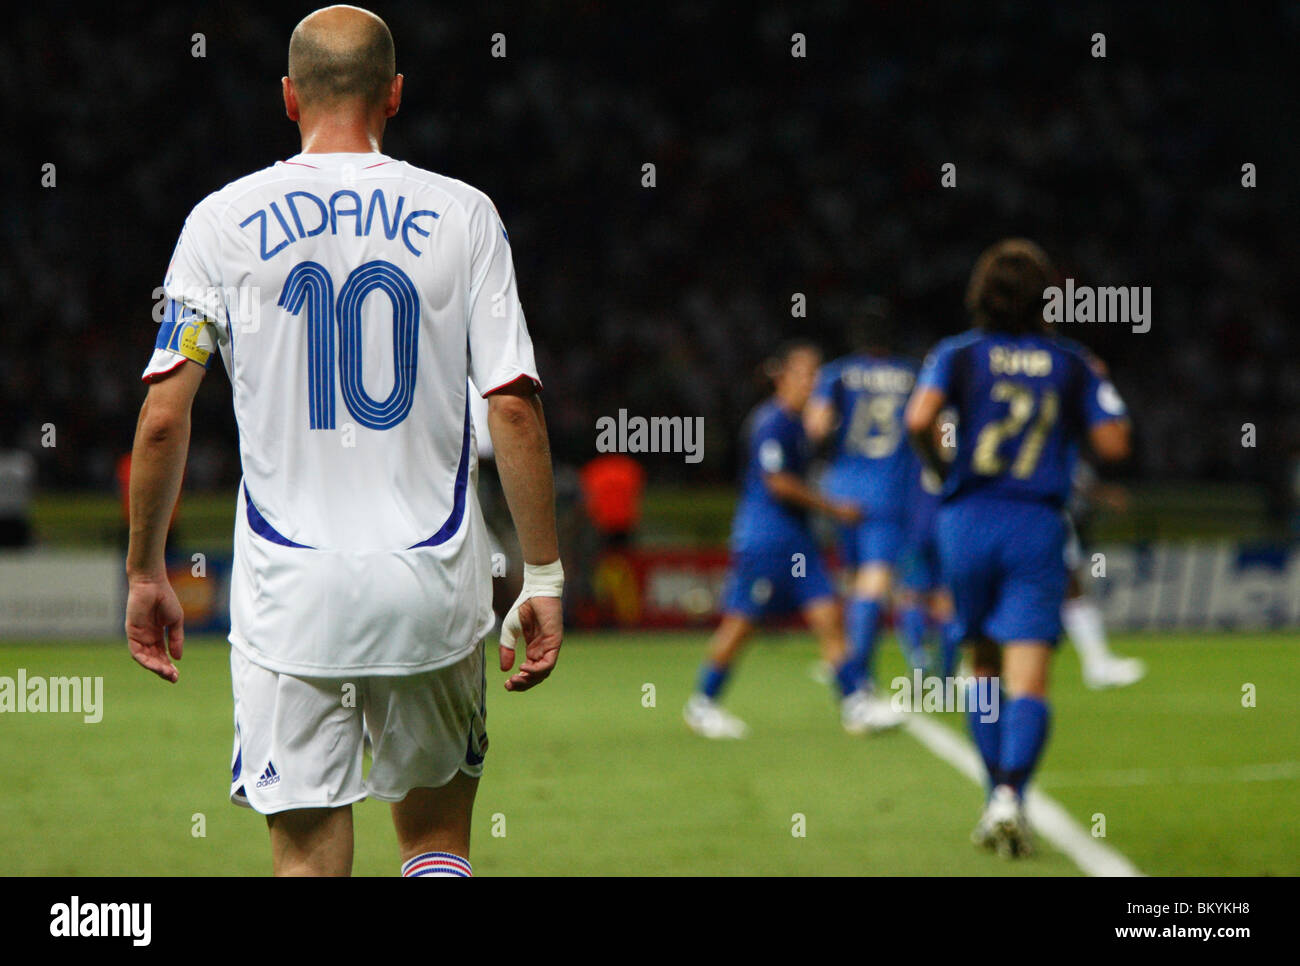 7a04e2deb Zinedine Zidane of France in action during the 2006 FIFA World Cup final  against Italy July 9